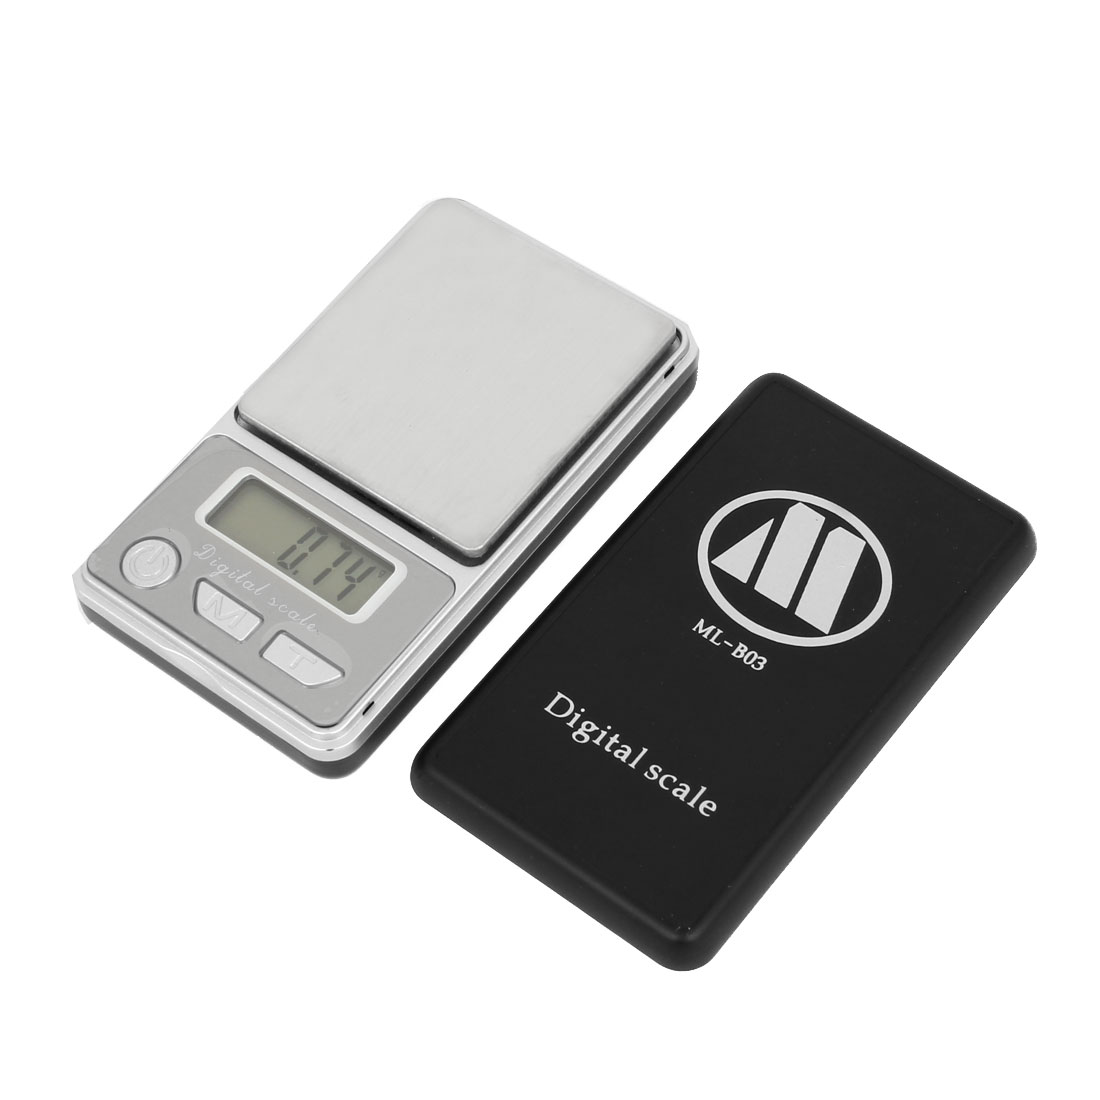 100g x 0.01g Jewelry Weight Balance Digital Pocket Scale Silver Tone